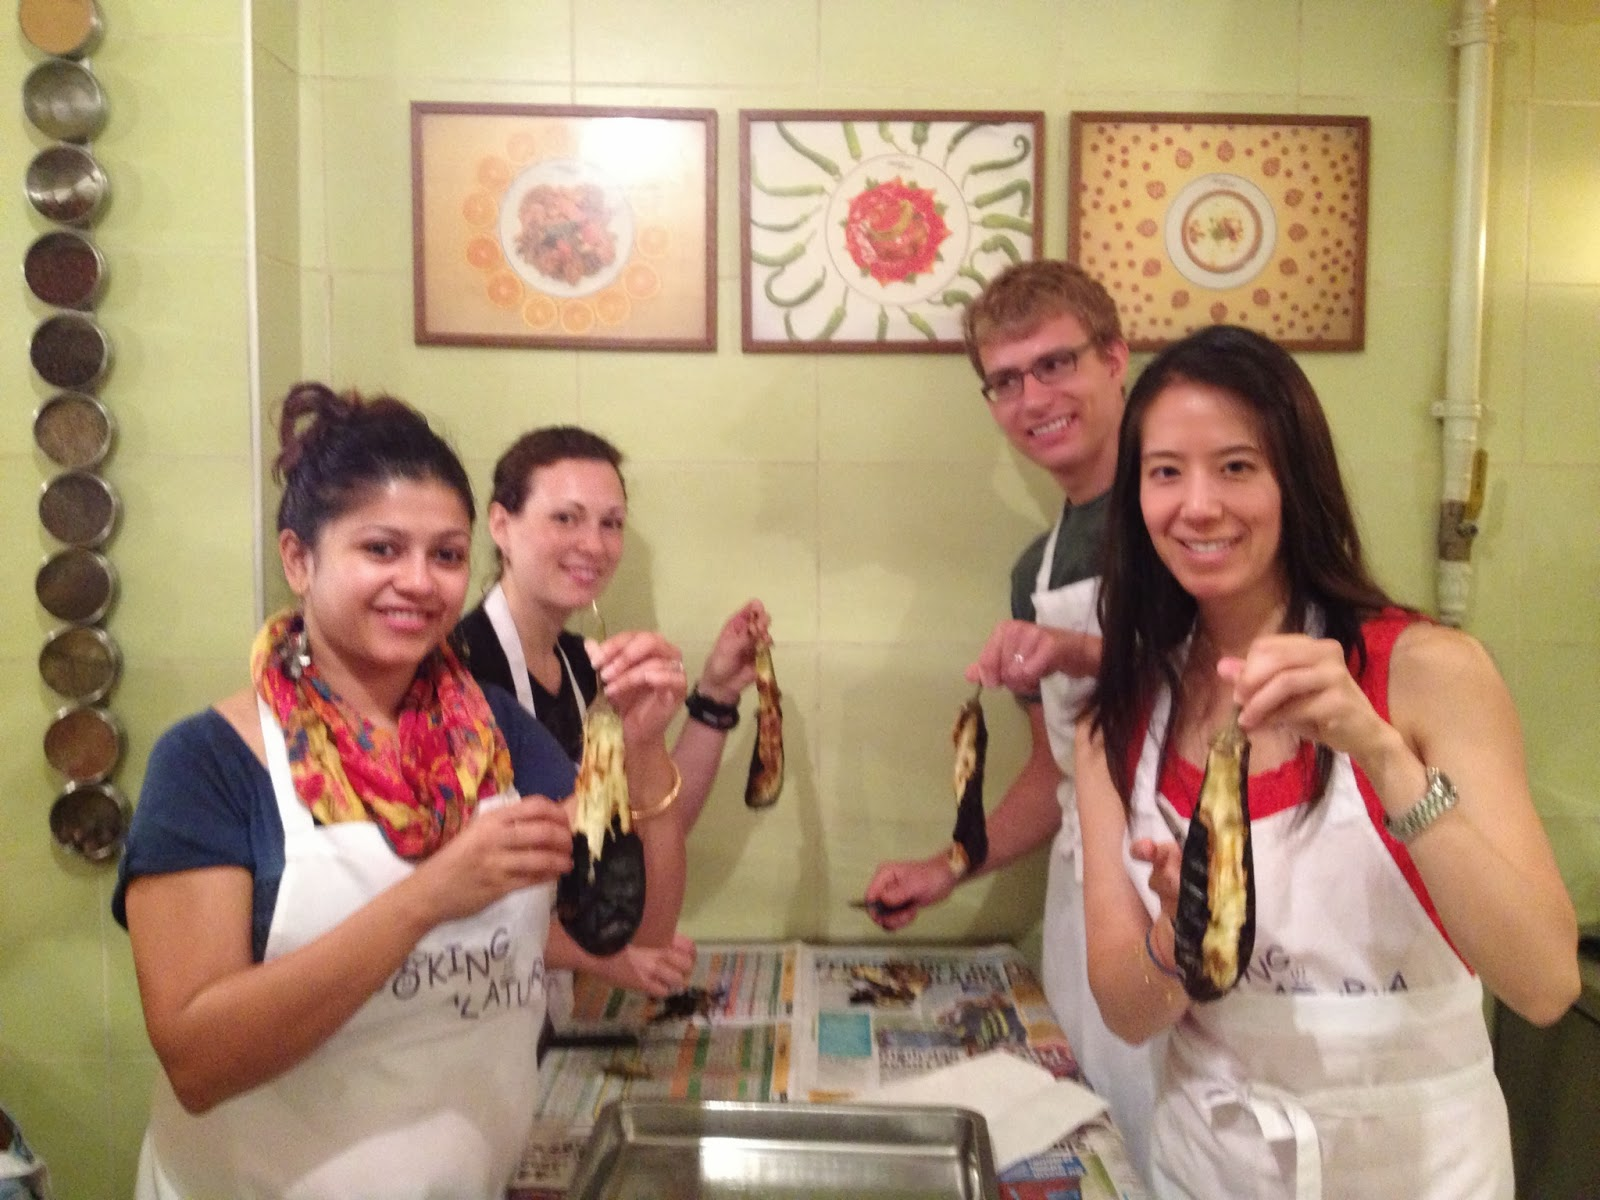 Istanbul - We took a cooking class with Cooking Alaturka. We're removing the skin from roasted eggplant.